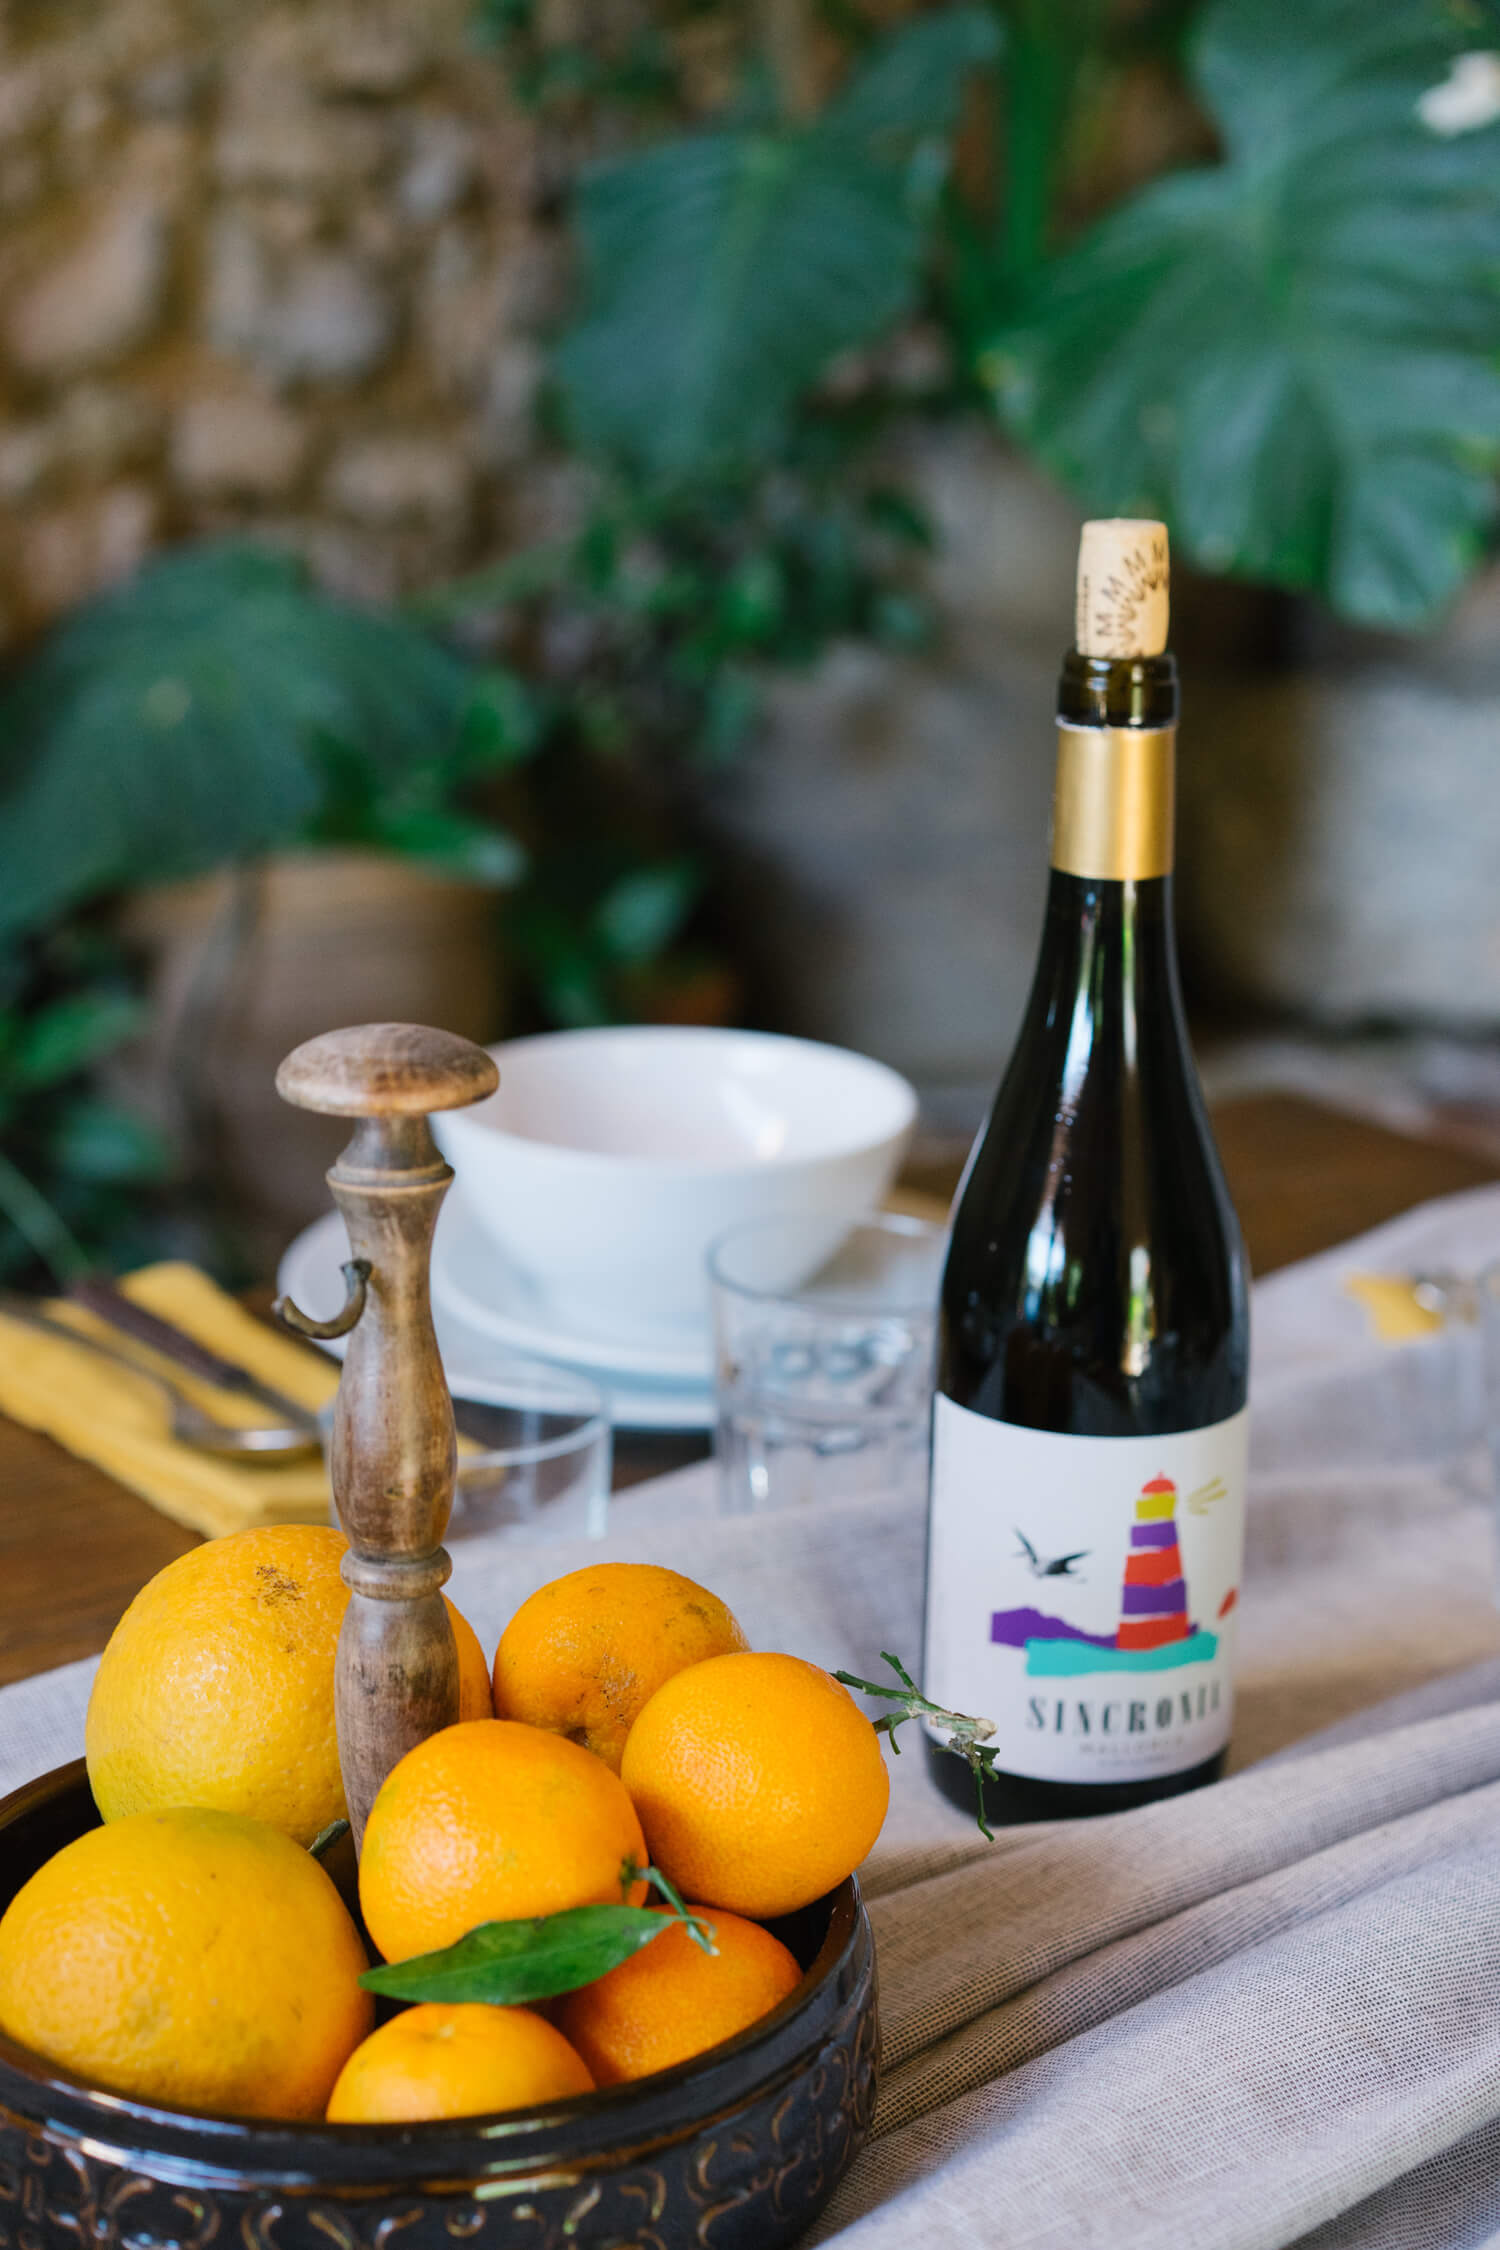 SINCRONIA NEGRE, the perfect nip to start getting familiar with the Mediterranean nature.